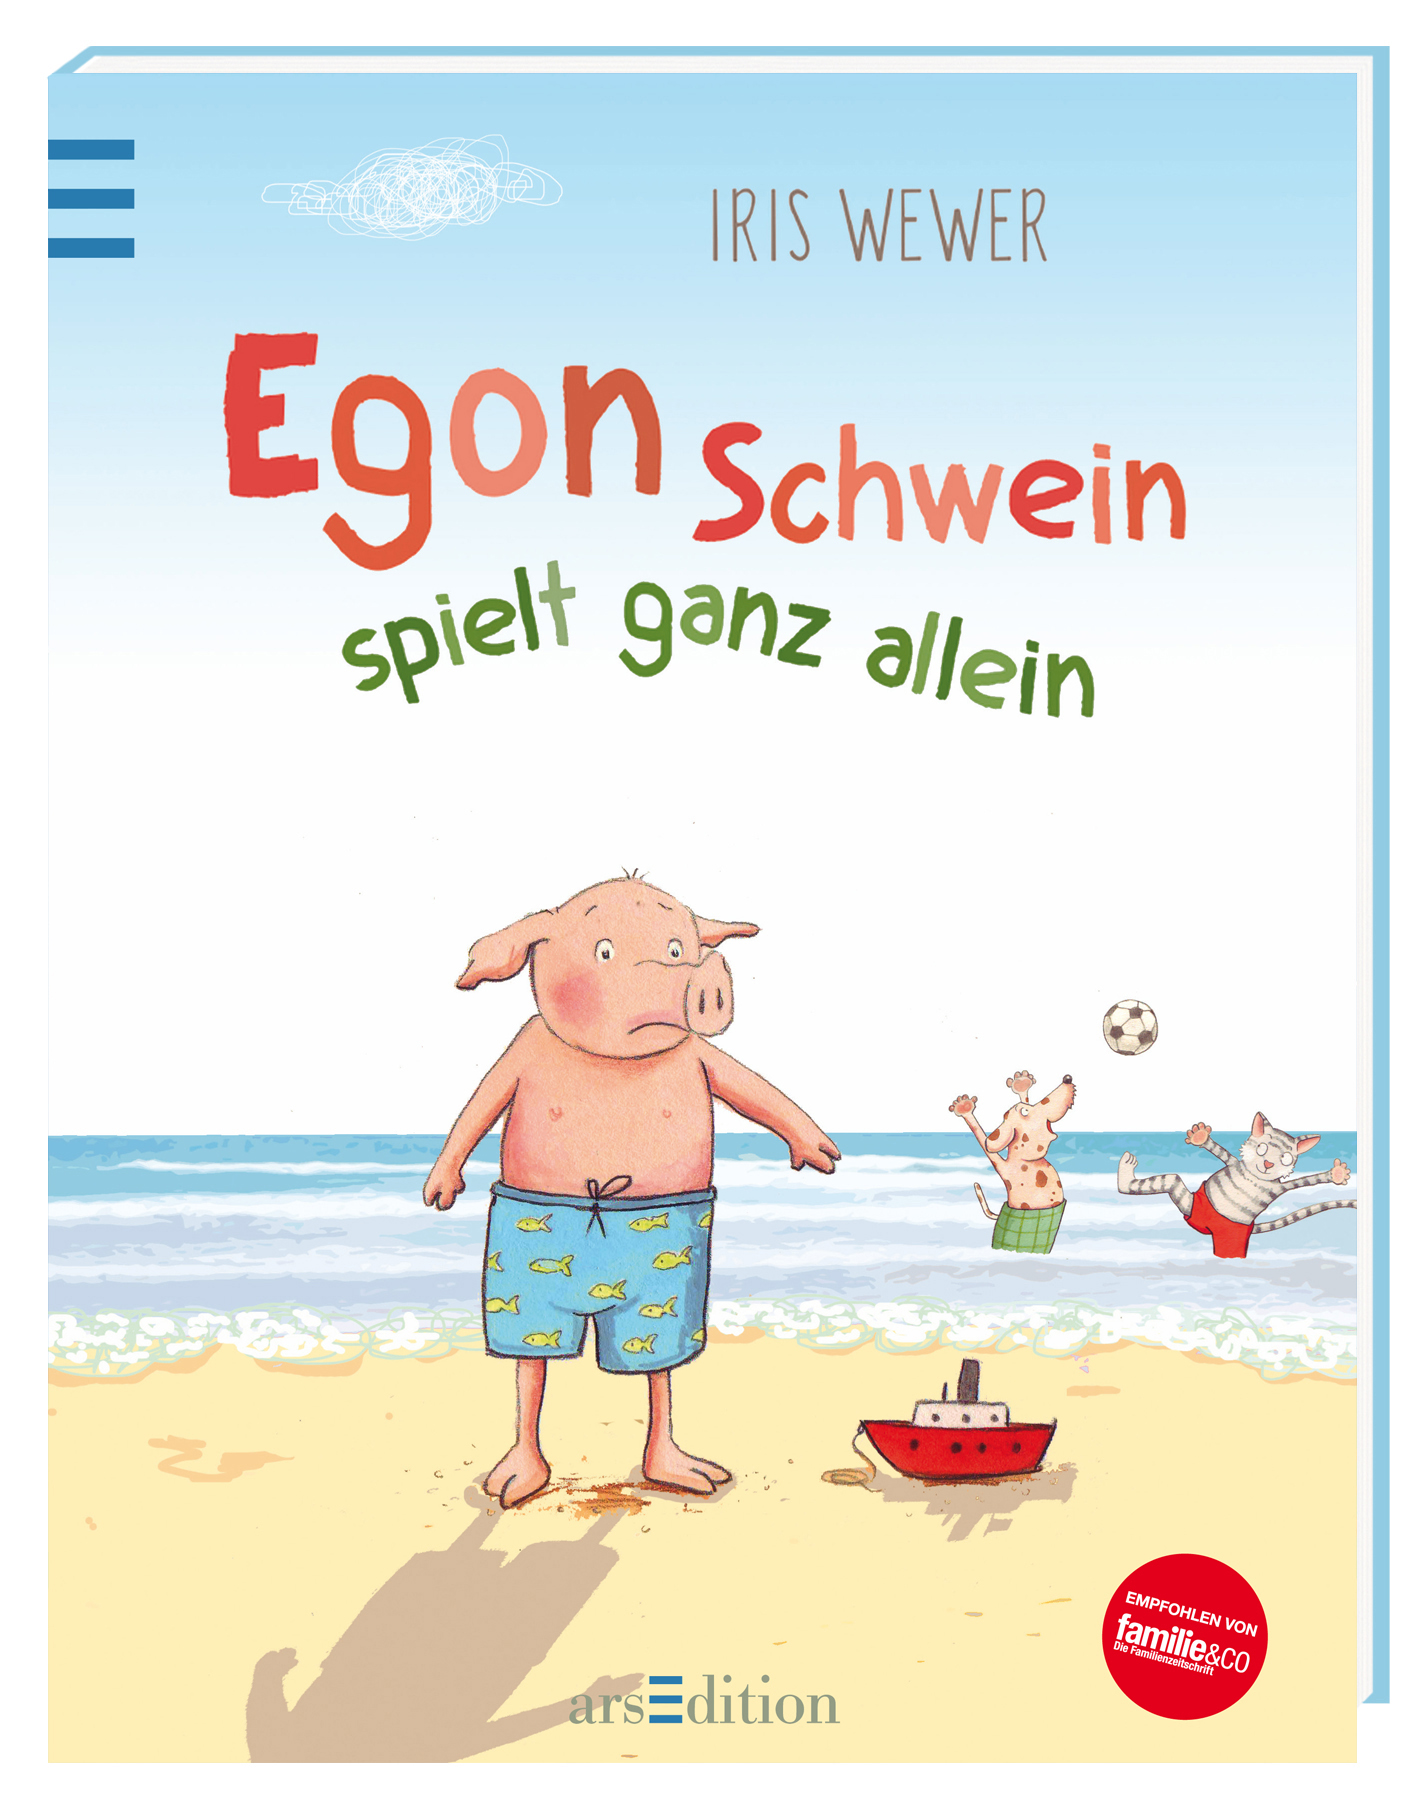 © 2015 arsEdition GmbH, München; Text und Illustration: Iris Wewer